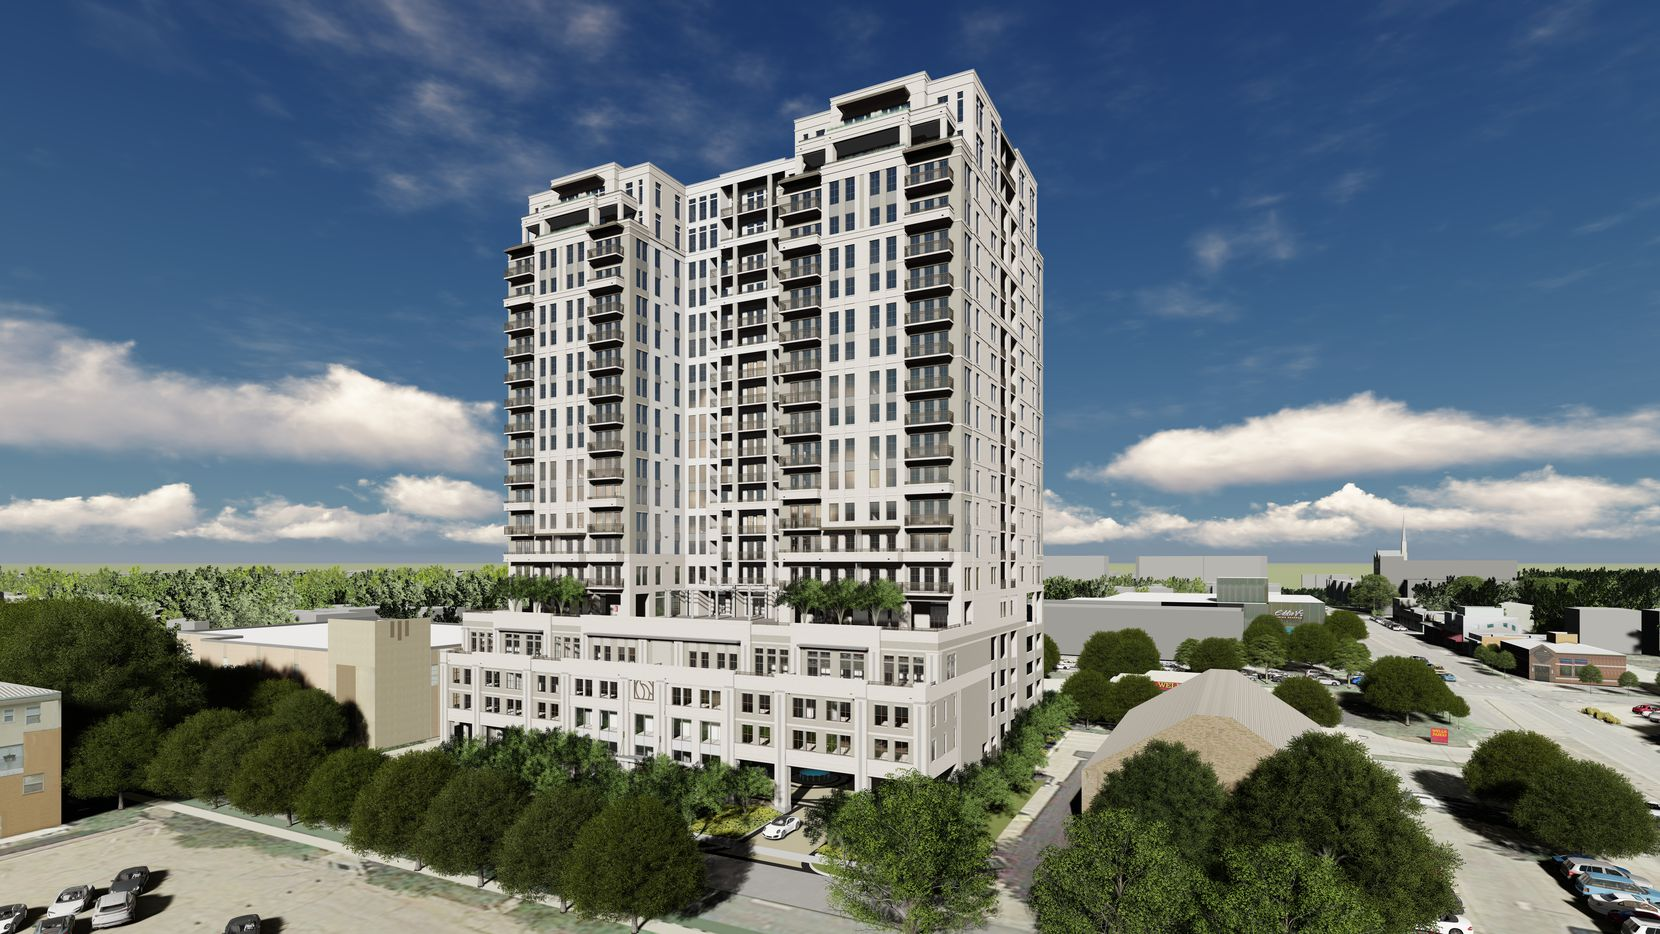 Crescent Communities' new Novel Turtle Creek high-rise is being built just south of Highland Park in Oak Lawn.